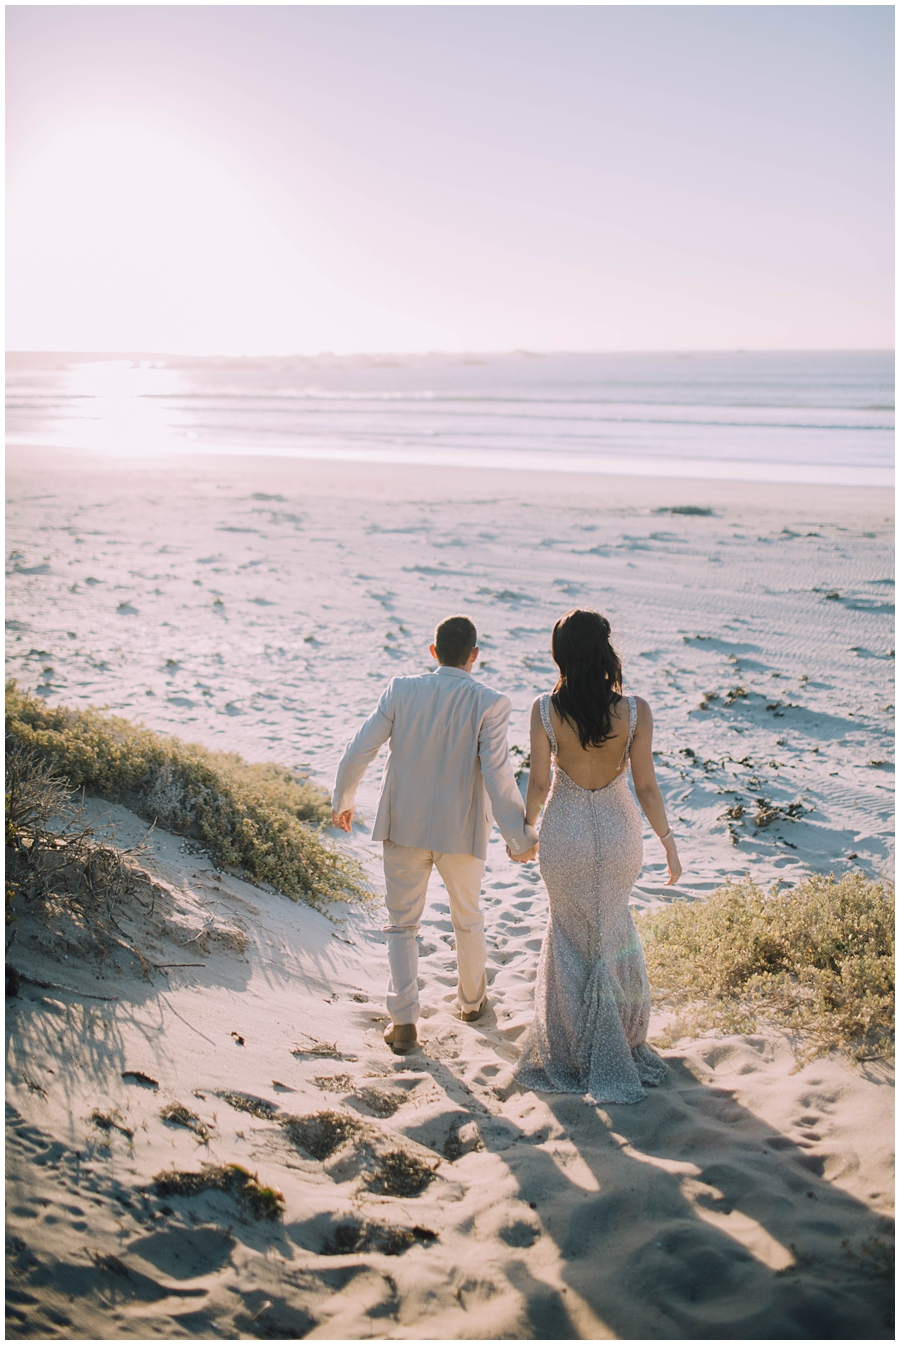 Ronel Kruger Cape Town Wedding and Lifestyle Photographer_0425.jpg